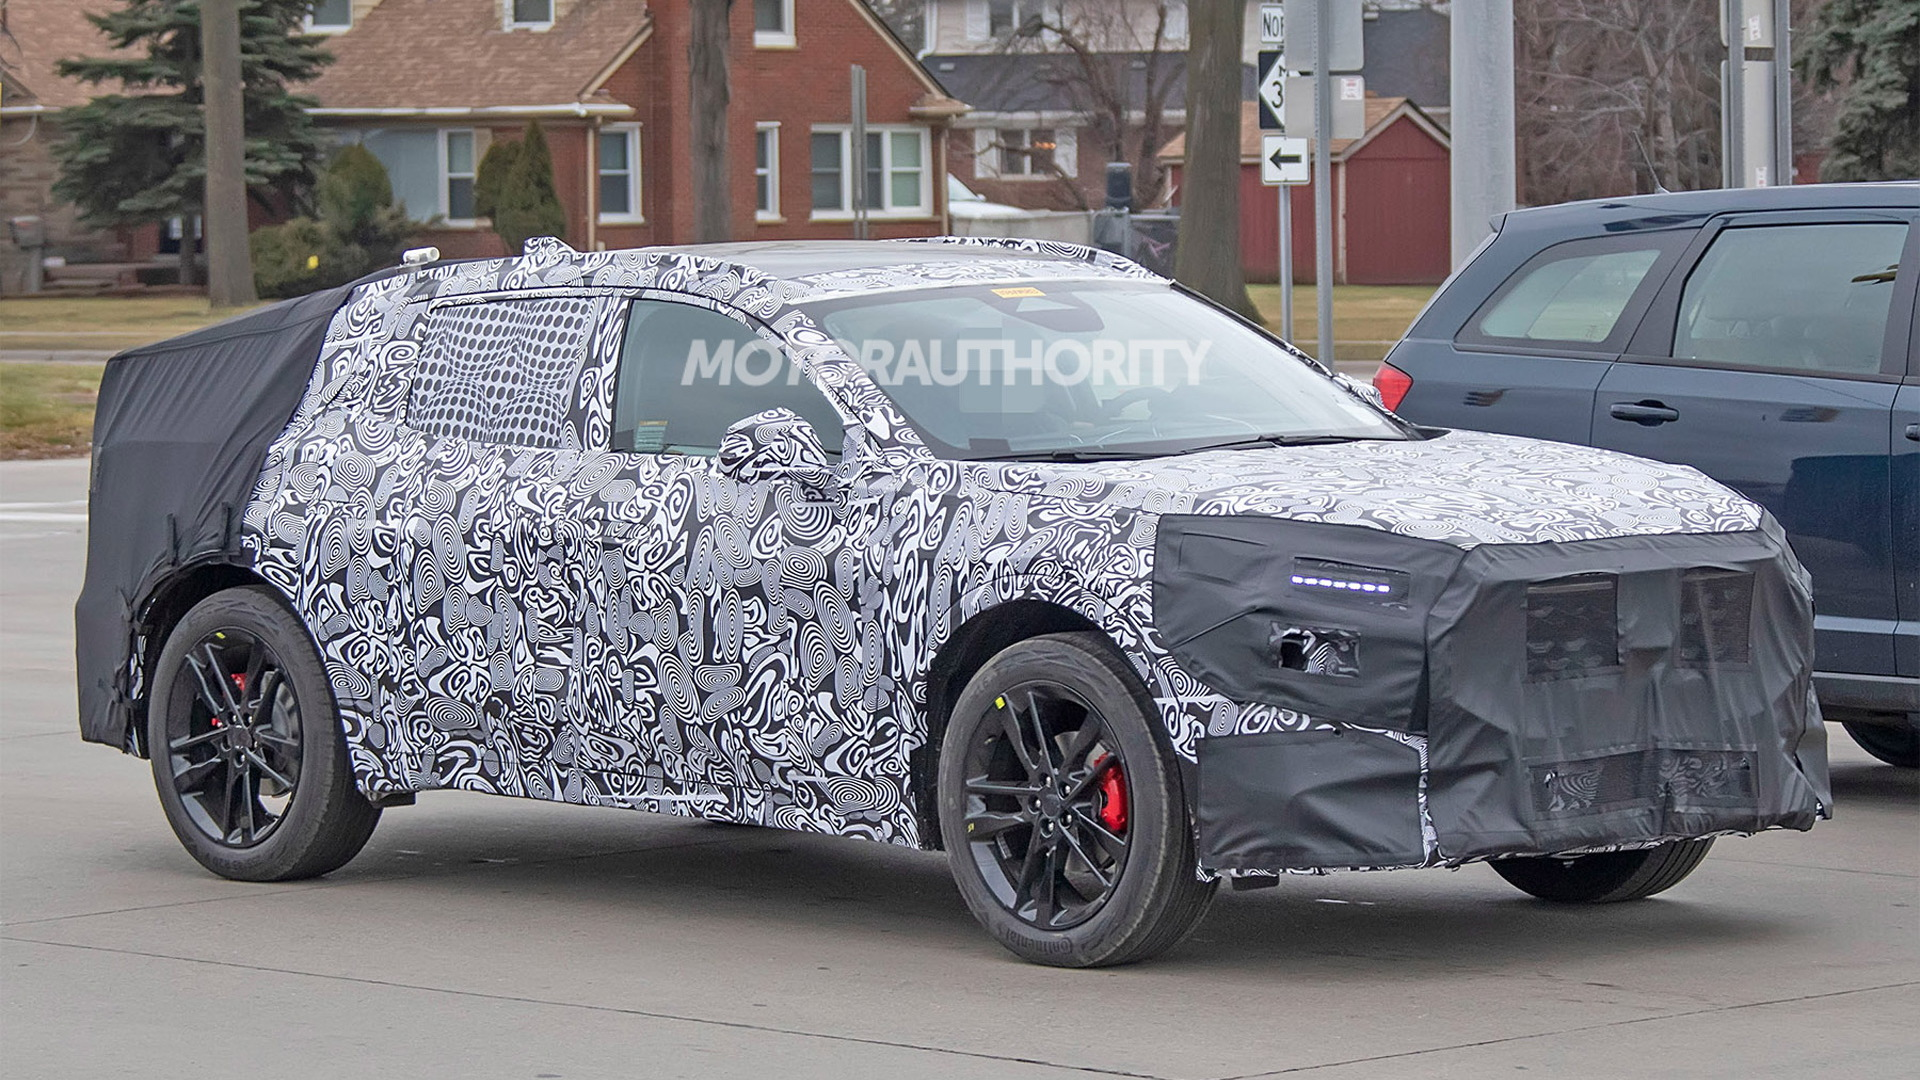 2022 Ford Fusion Active spy shots - Photo credit: S. Baldauf/SB-Medien